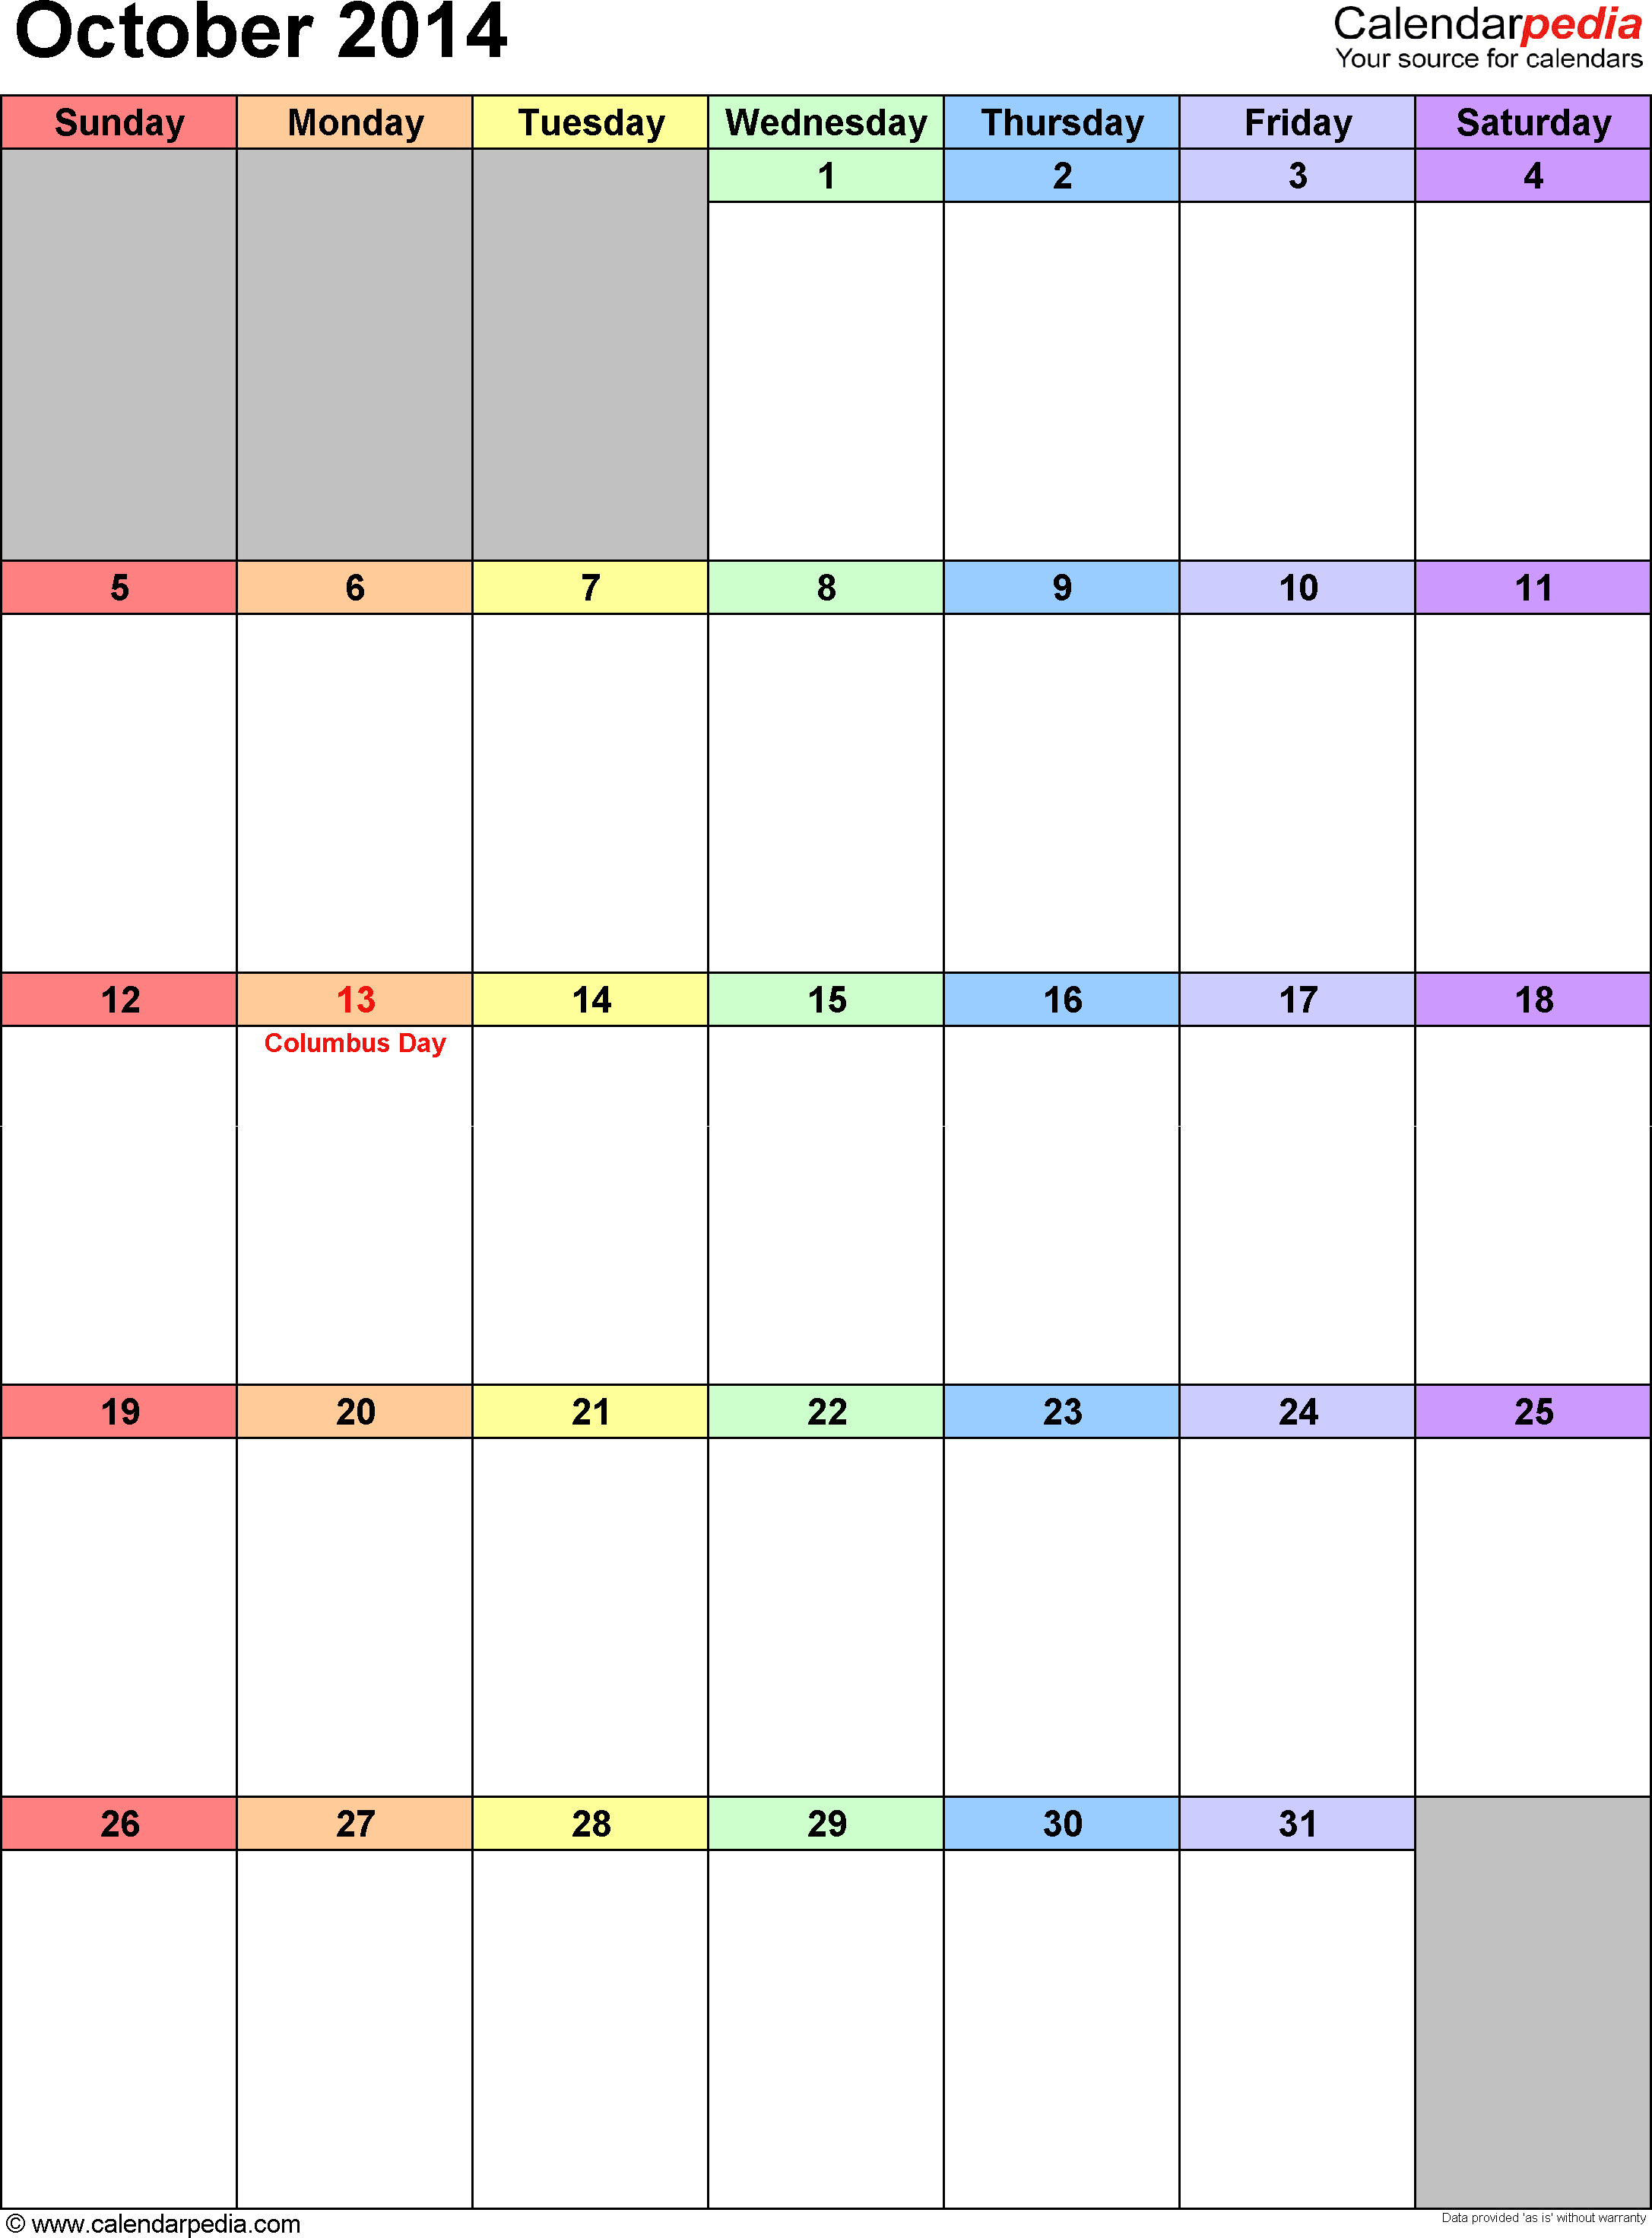 October 2014 calendar as printable Word, Excel & PDF templates